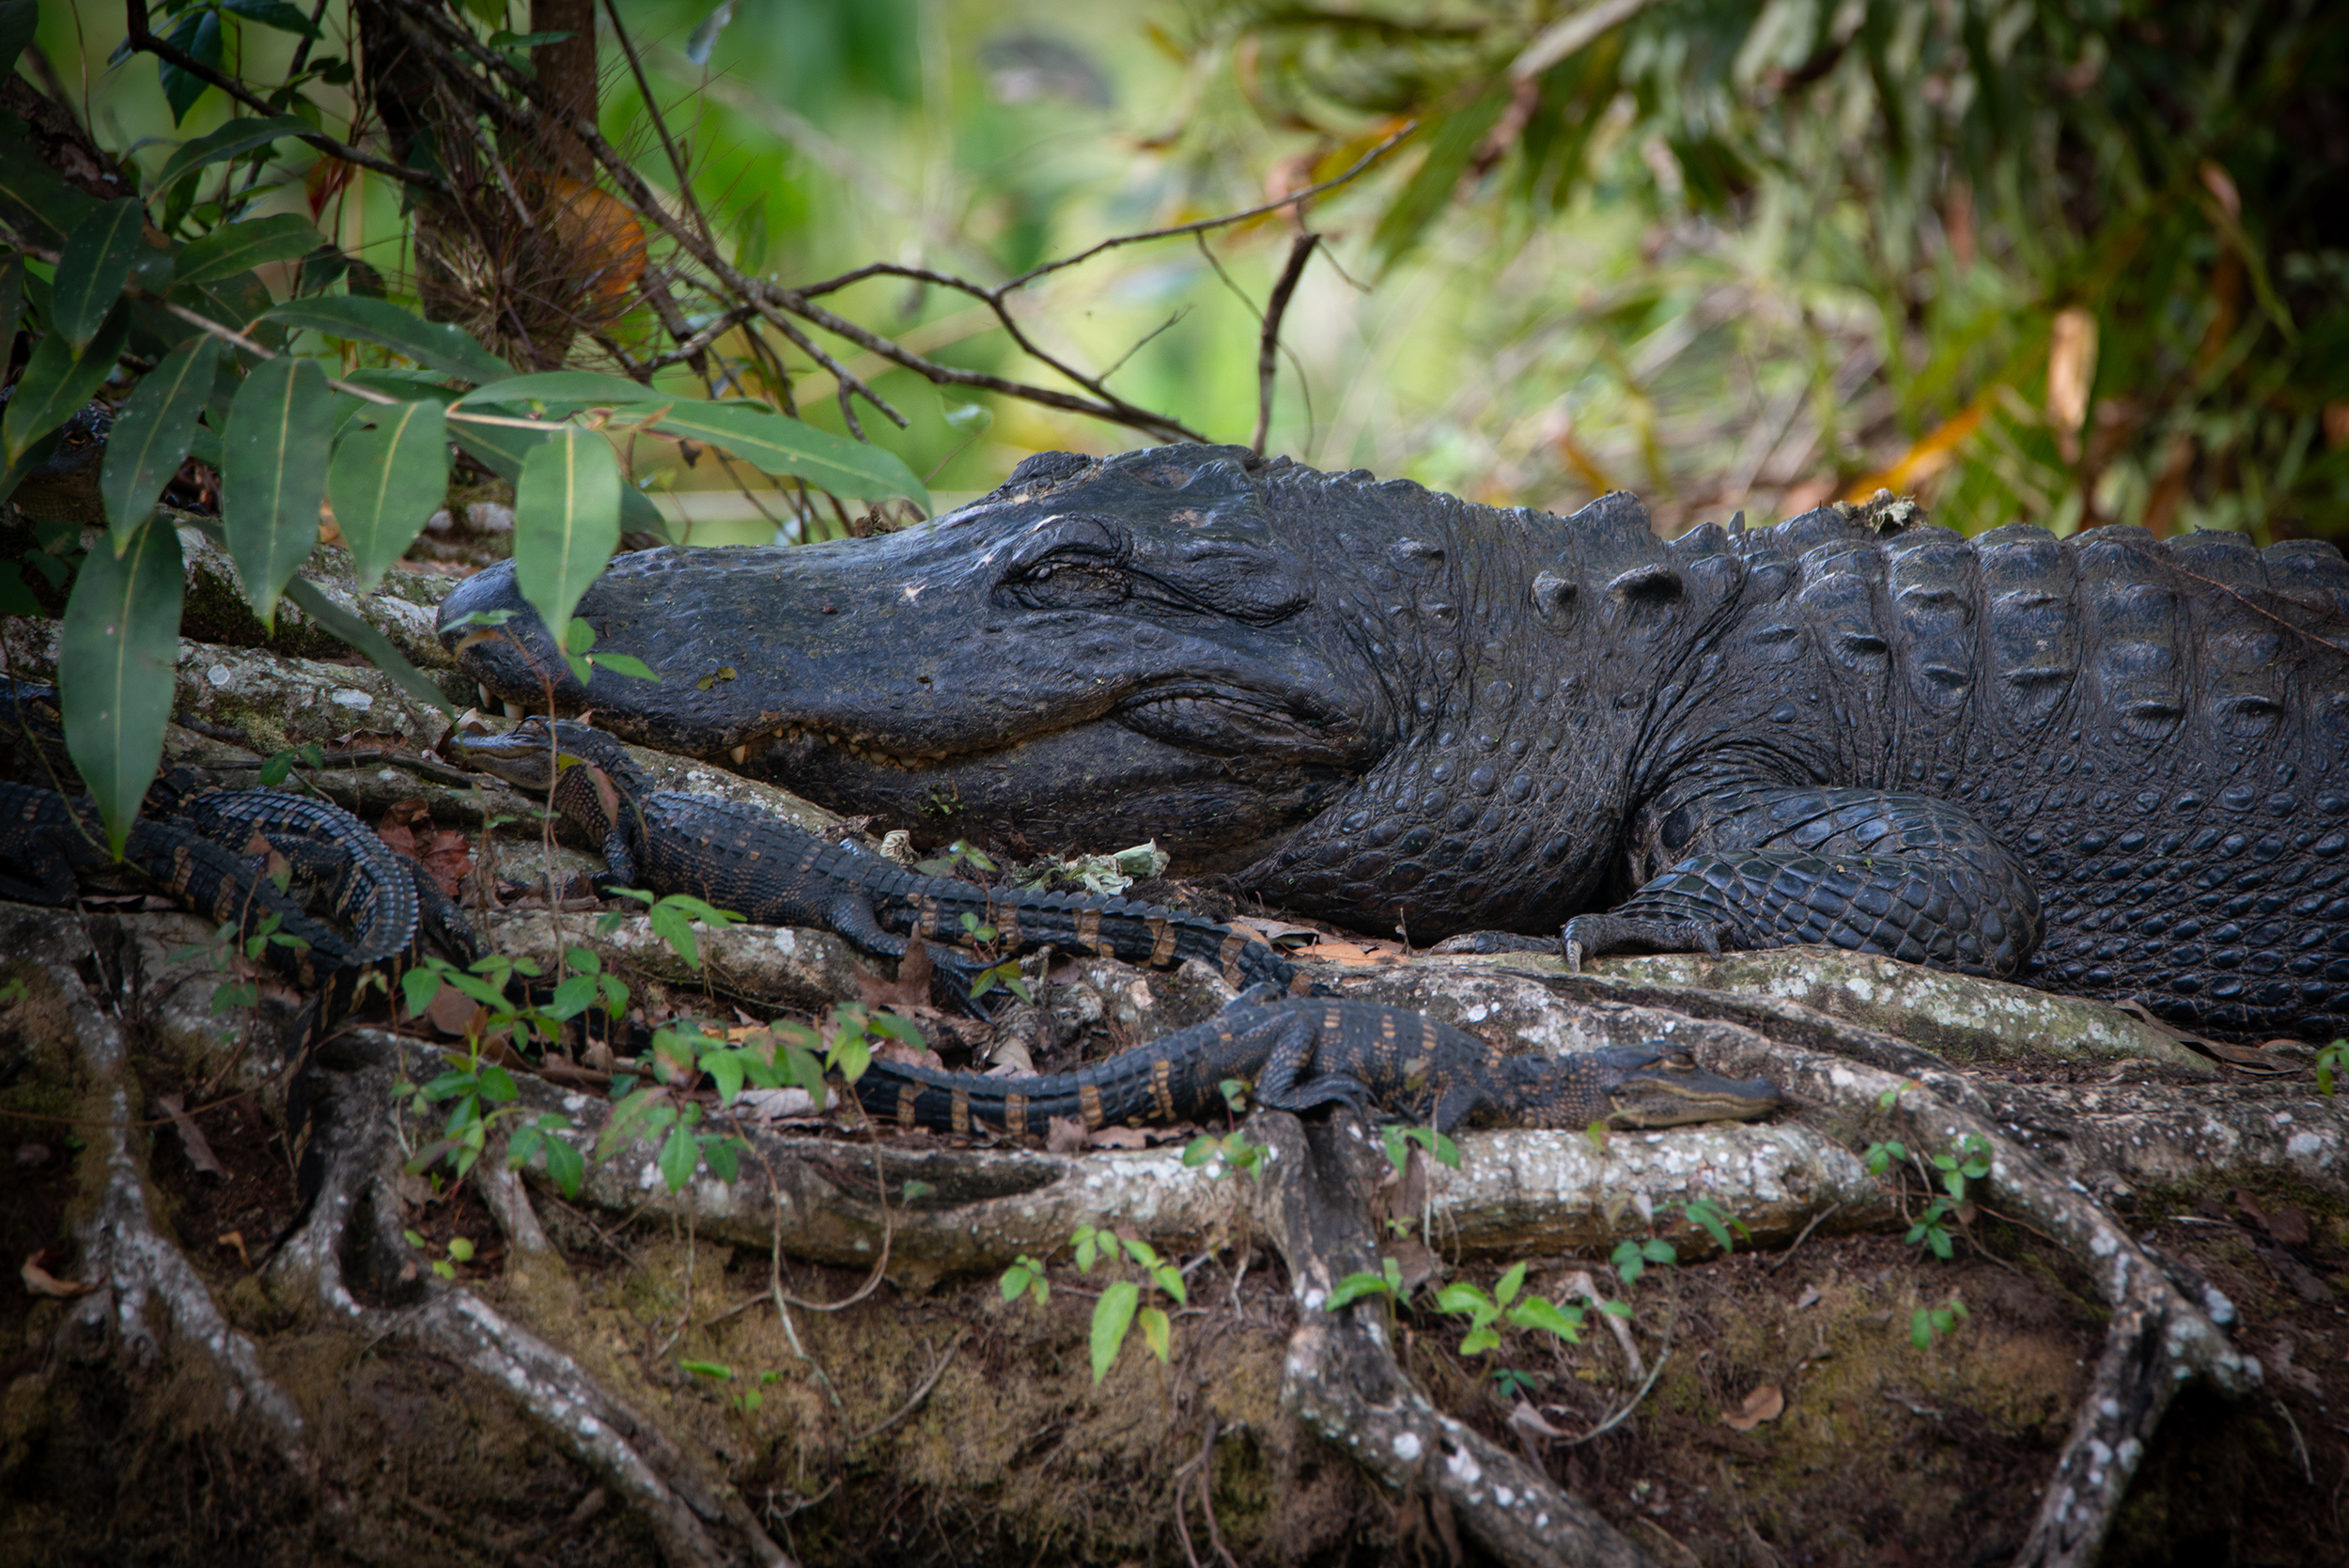 #alligator, #gator, #wildlife, #dangerous, #mother, #babies, #wildlifephotography, #nikon, #tamron, #florida, #corkscrew, #corkscrewswampsanctuary, #thingstodo, #naples, #territory